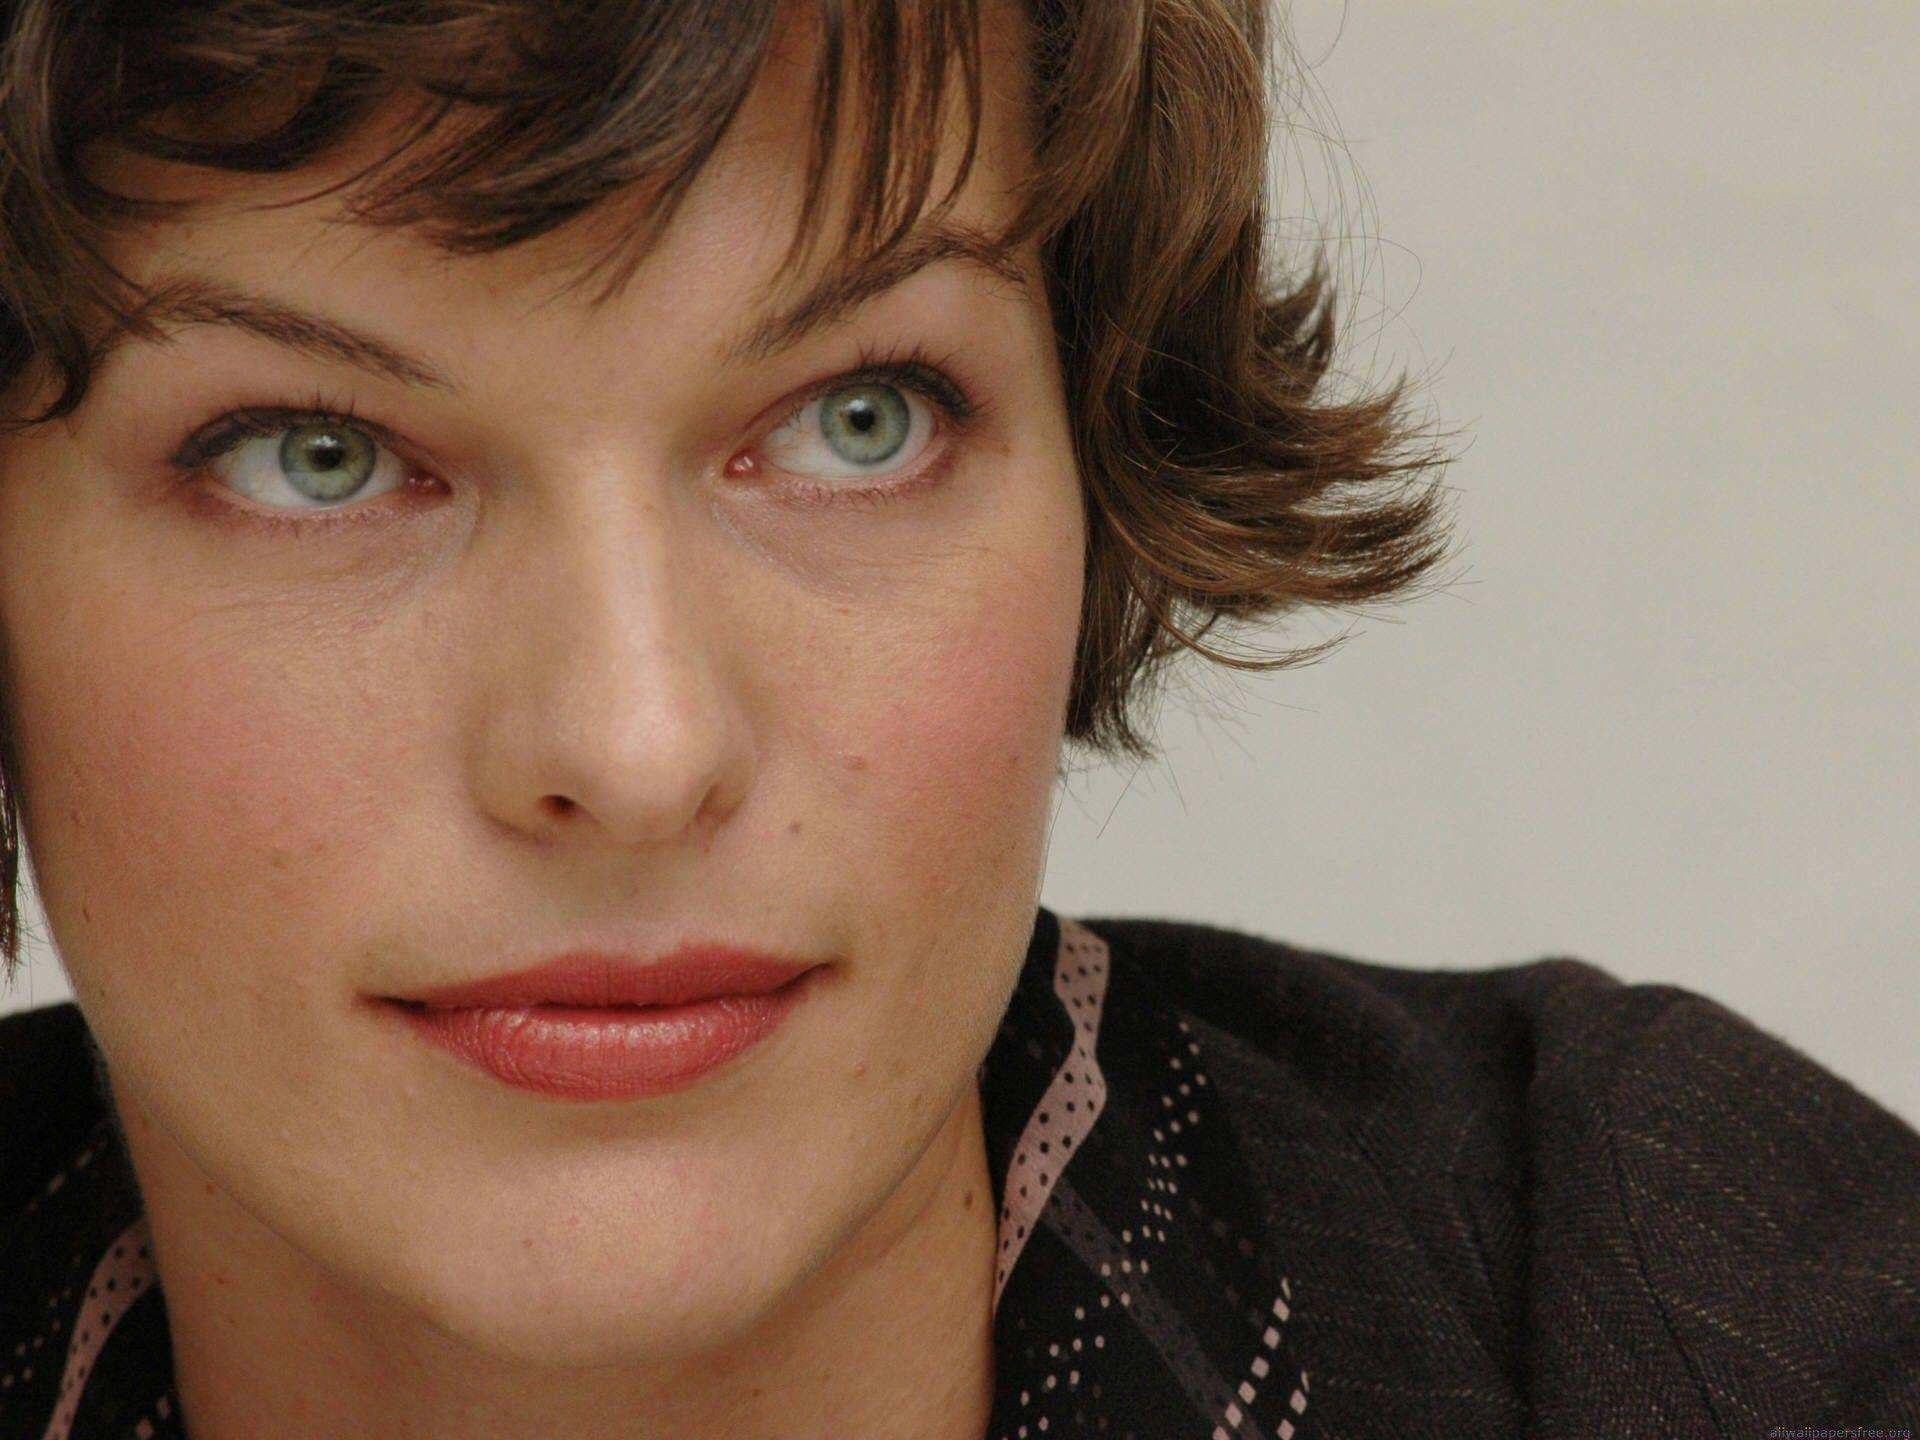 Wallpapers Collection Car Desktop Wallpapers Hd Milla Jovovich